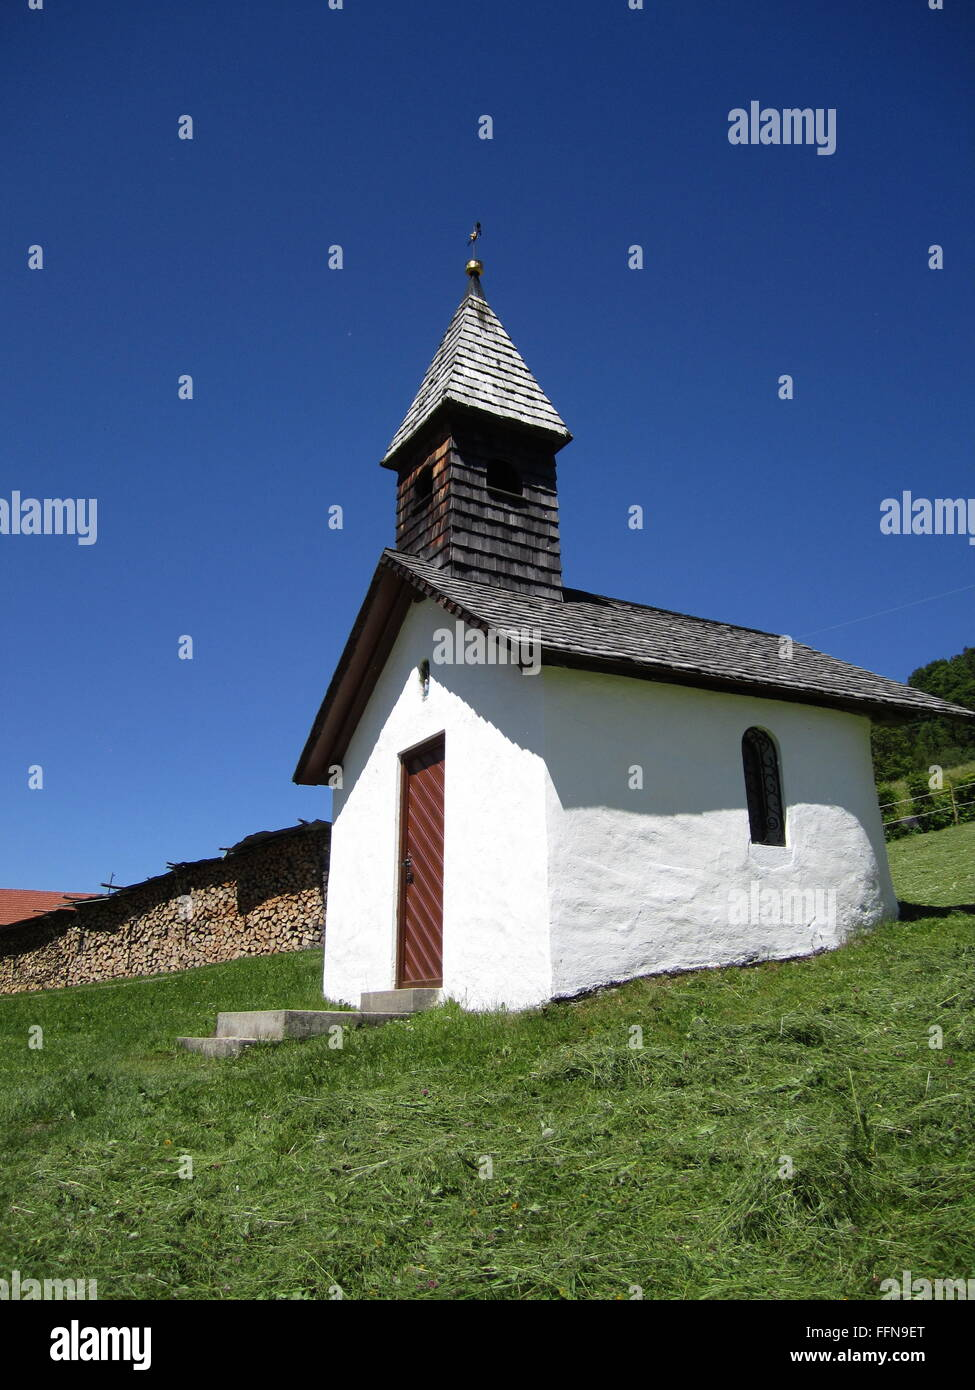 geography / travel, Germany, Bavaria, landscapes, Rein Valley, alpine dairy 'Hanneslabauer', chapel, Additional - Stock Image